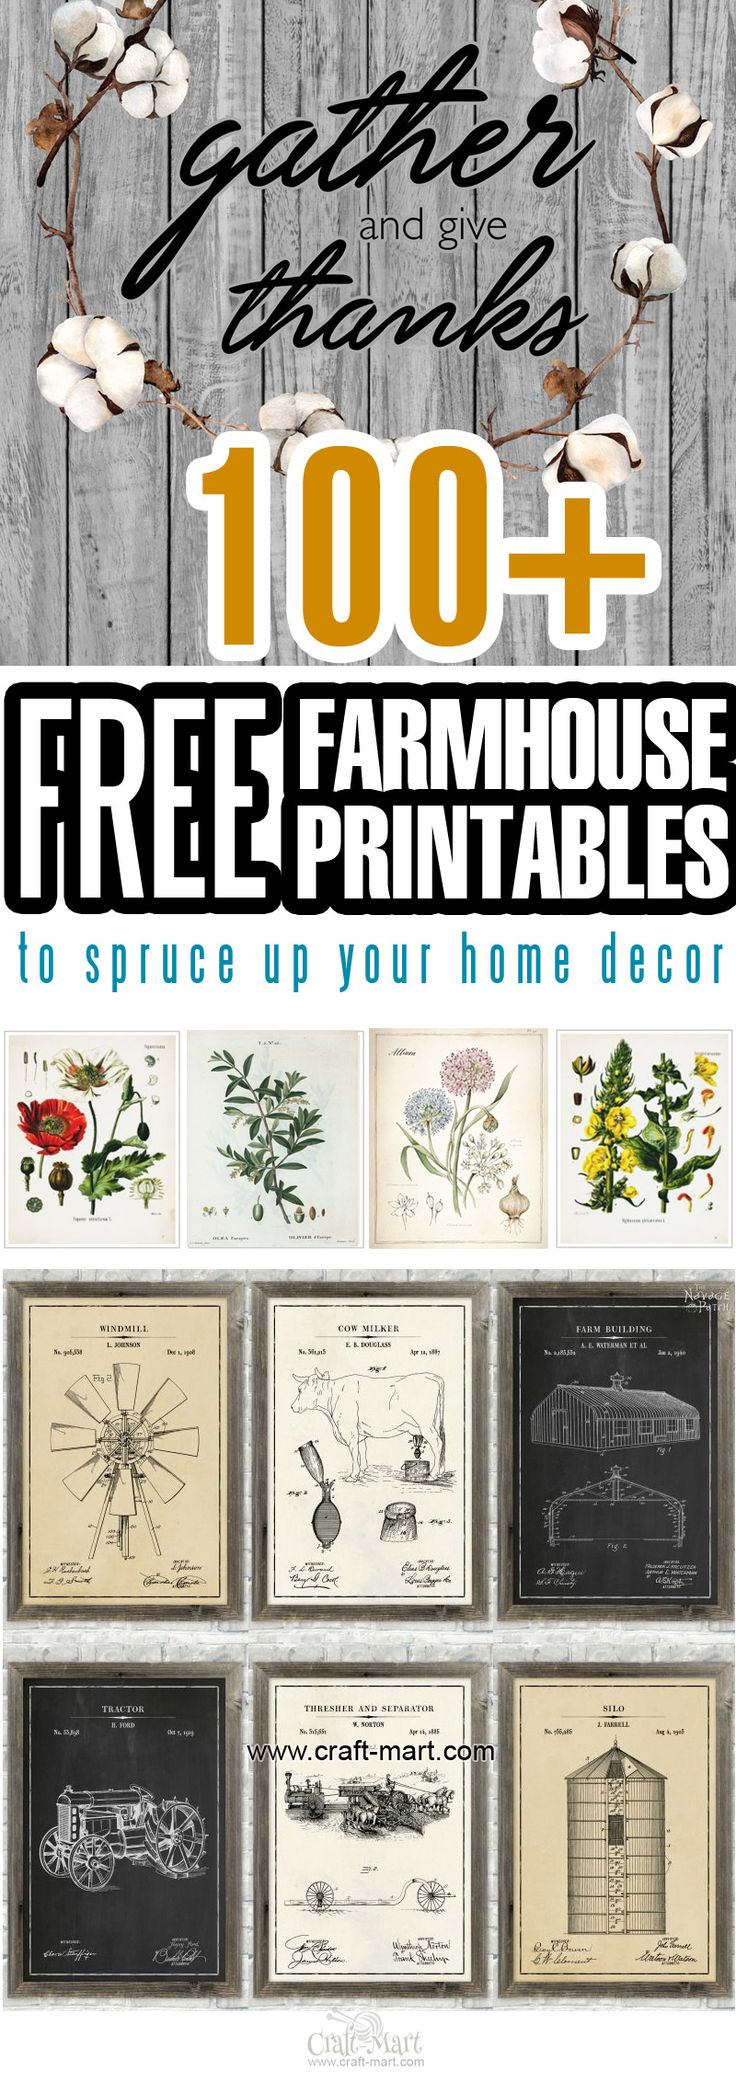 Our team browsed hundreds of free and not-so-free farmhouse printables and came up with a collection of BEST FREE FARMHOUSE PRINTABLES for home decor available. We checked all the sites for the authenticity of prints they are offering, evaluated the ease and quality of downloads, and made sure that all the links are current and working. #farmhousedecor #farmhouse #freeprintable